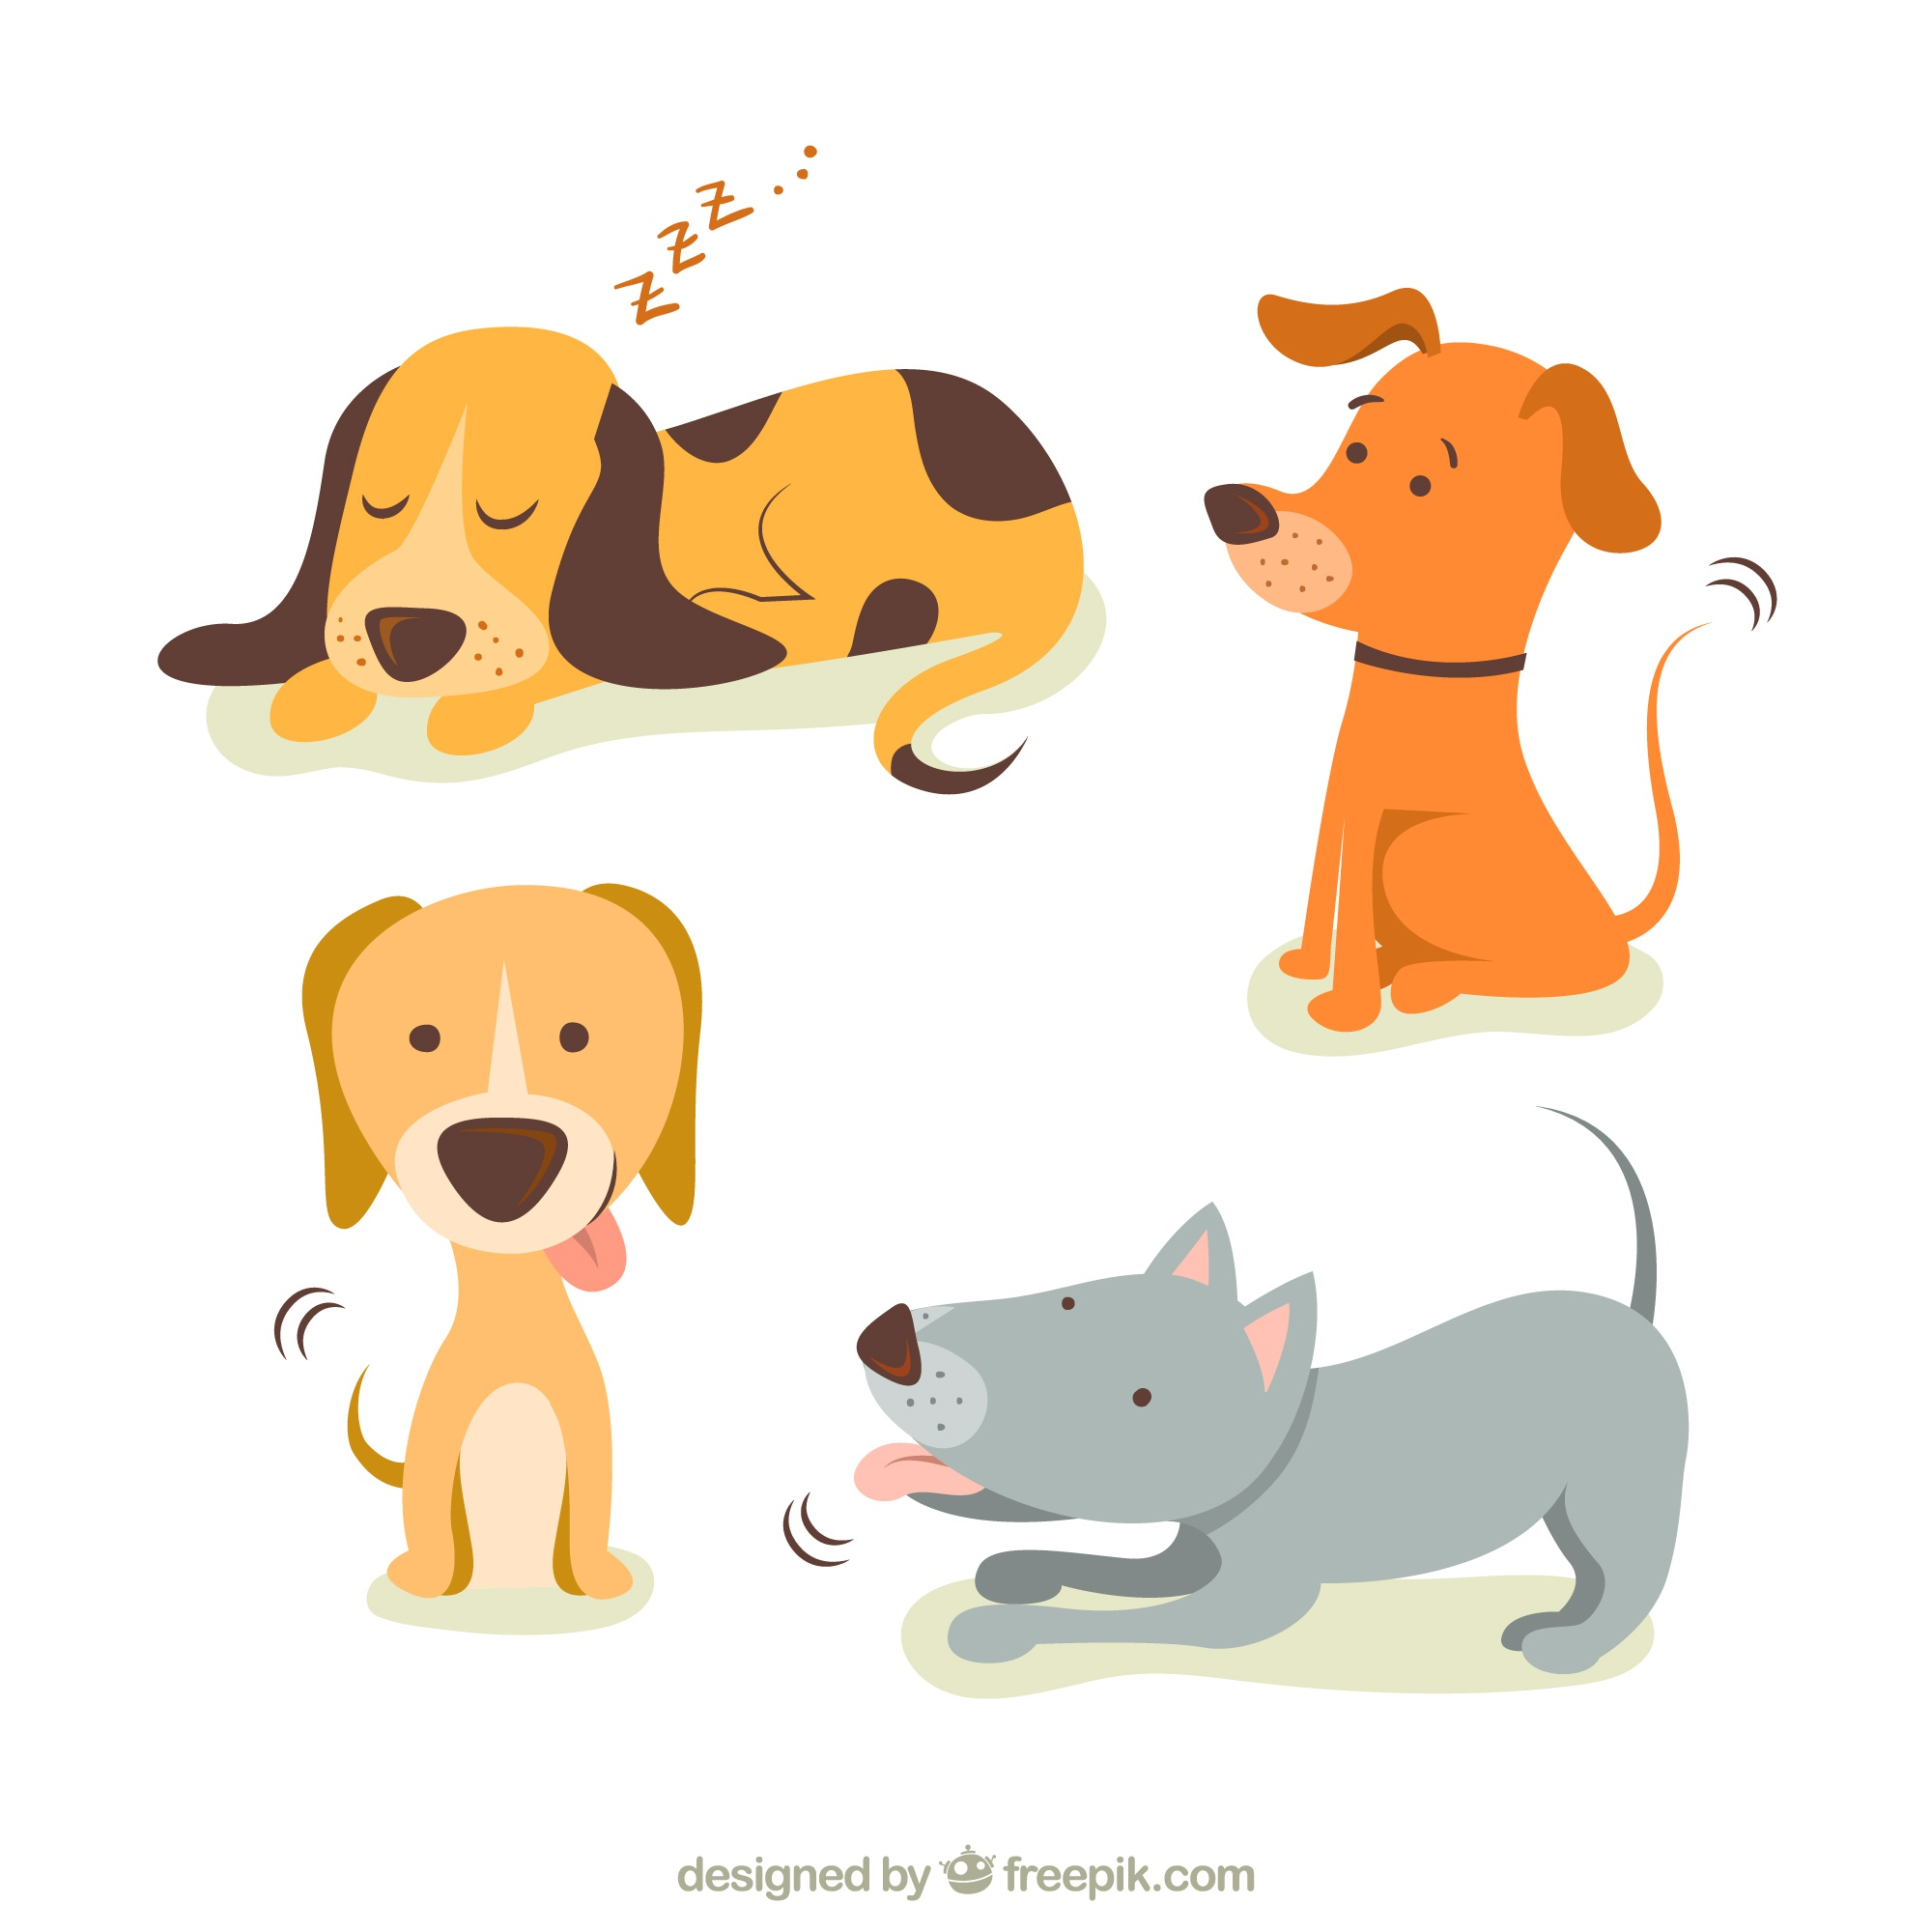 Cute illustrations of dogs